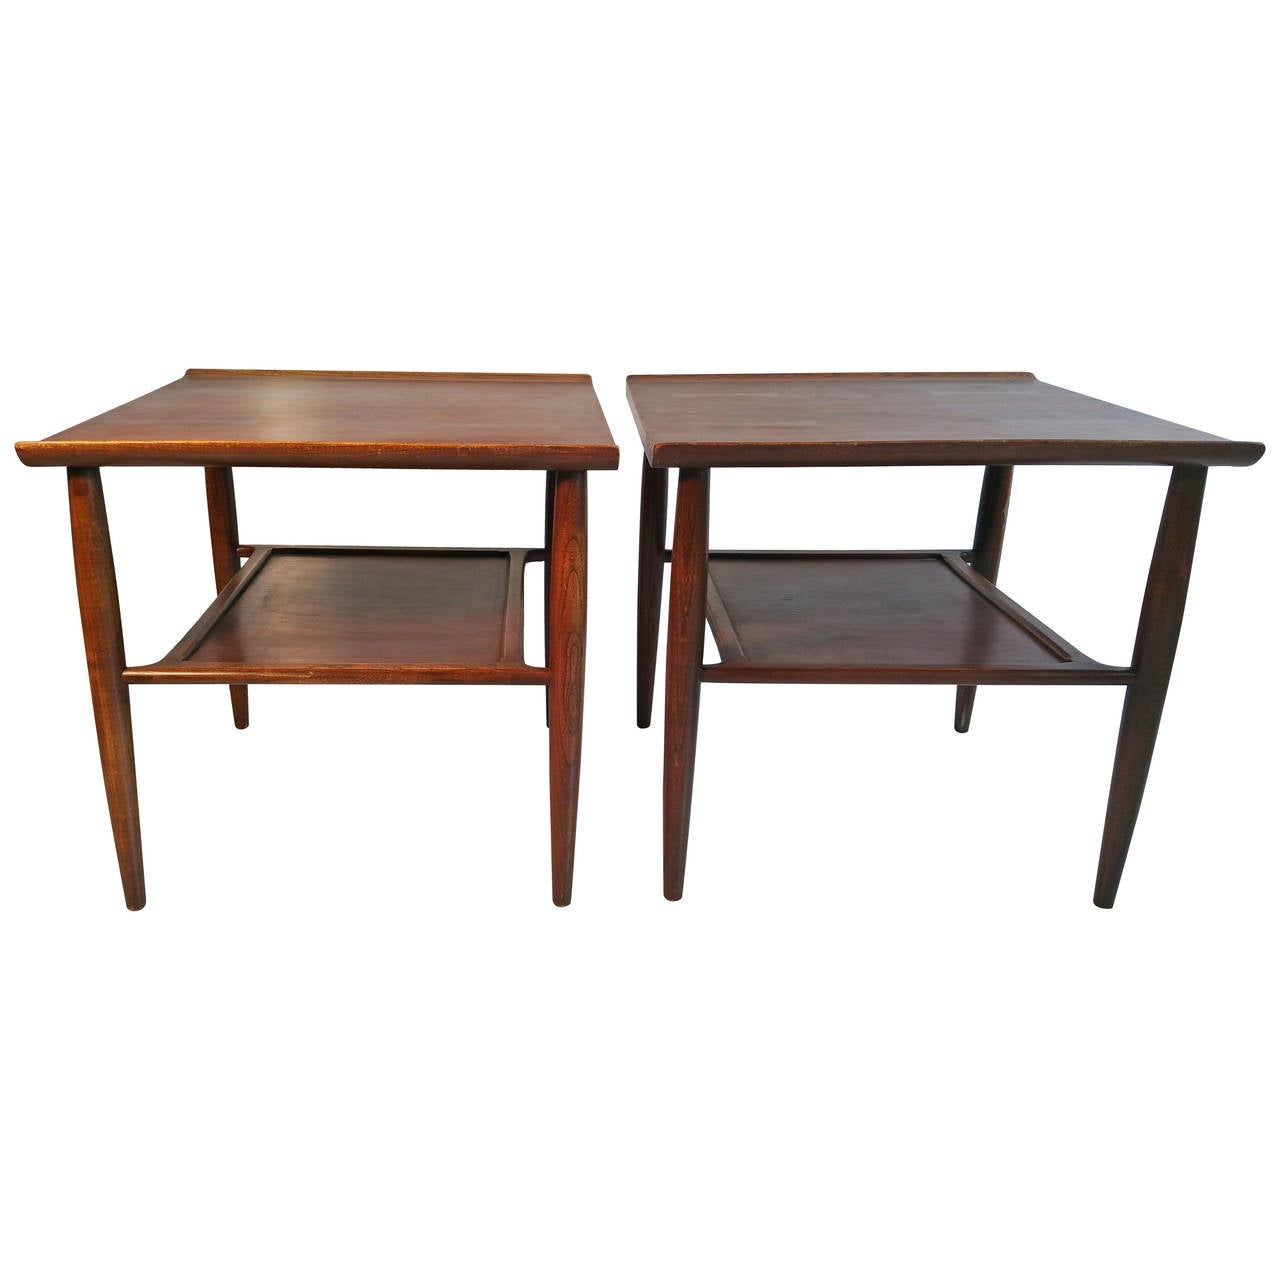 Matched Pair Of End Tables In Walnut Oak And Ash By